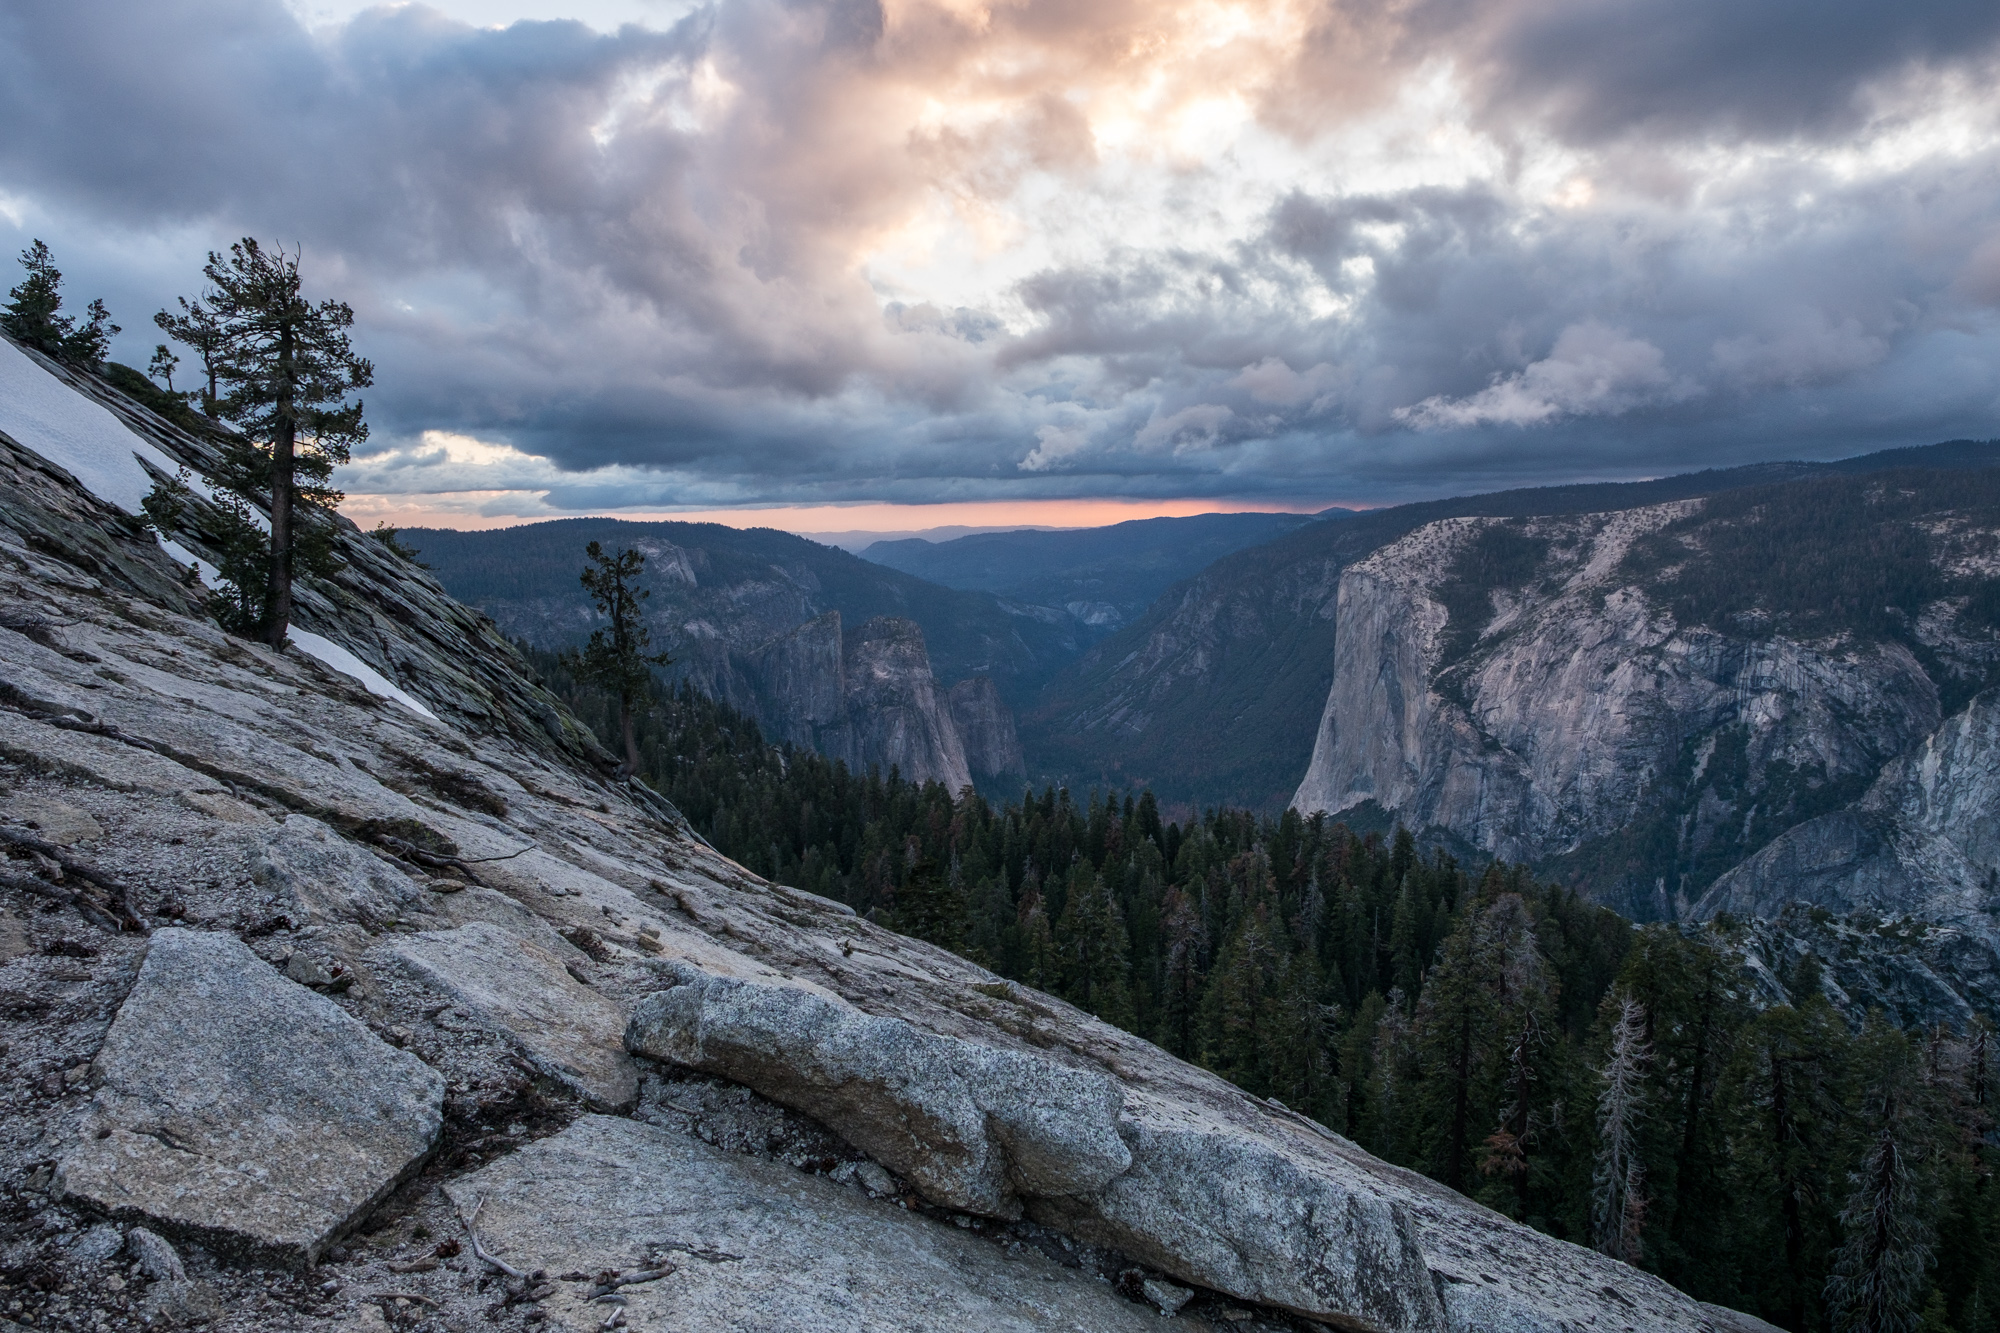 Sunset from the side of Sentinel Dome, looking back down the valley.